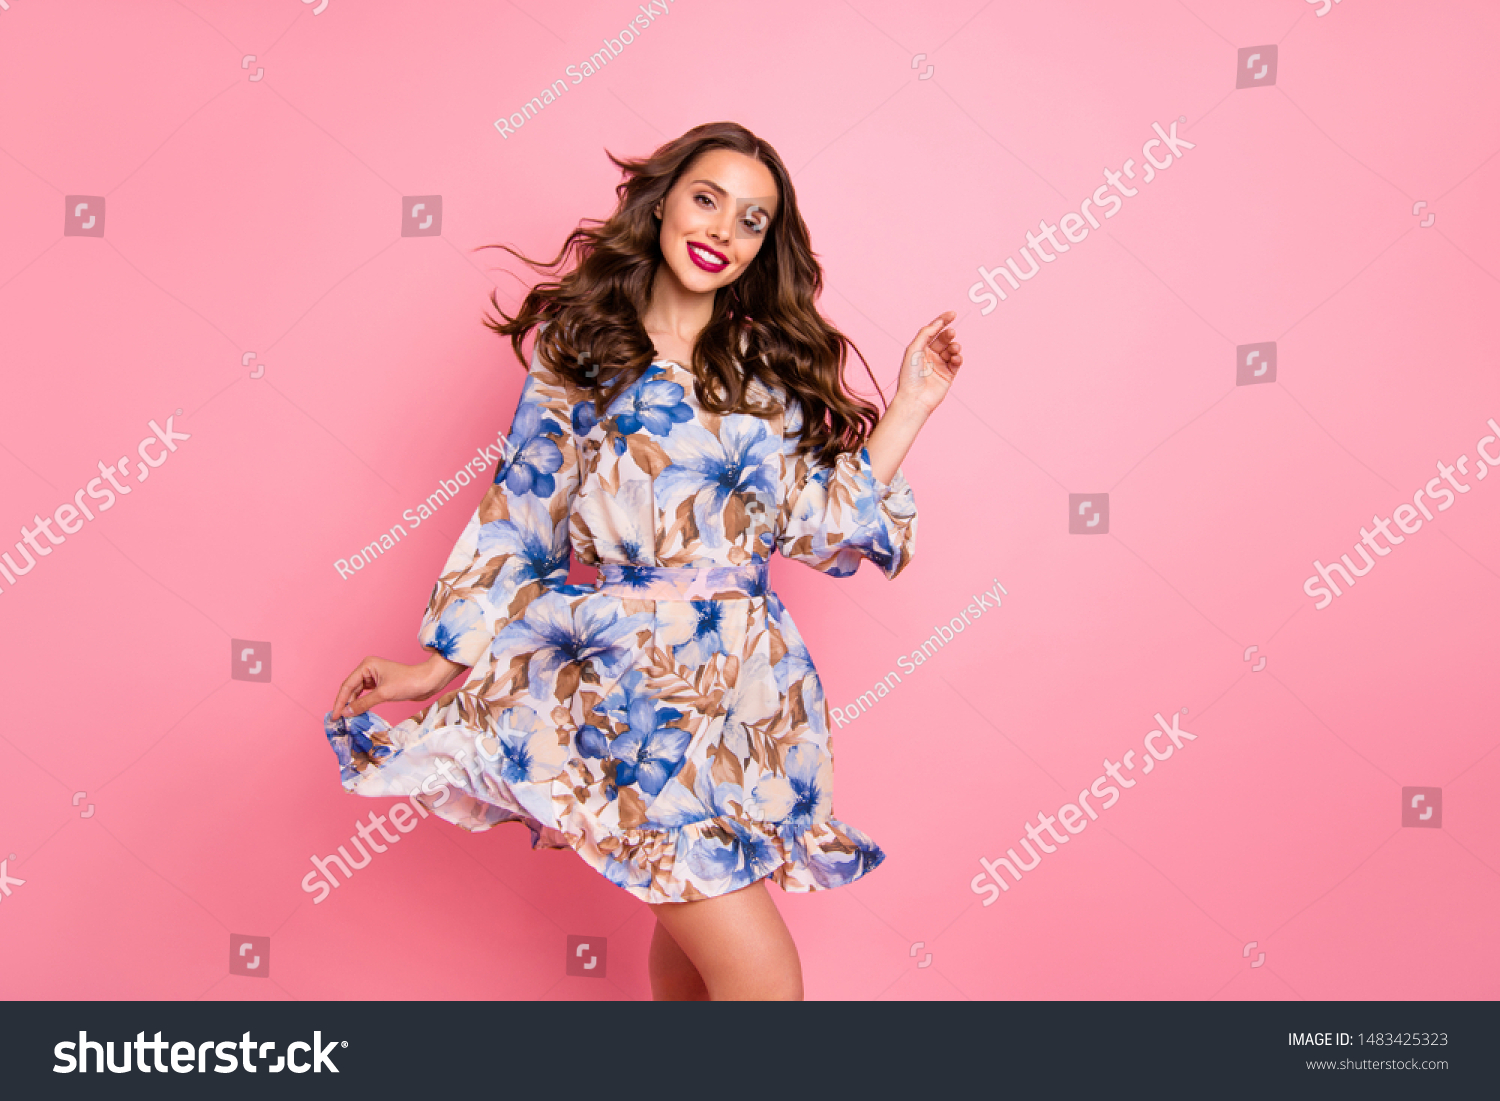 Nice lady overjoyed by warm spring breeze going romantic date wear cute dress isolated pink background #1483425323